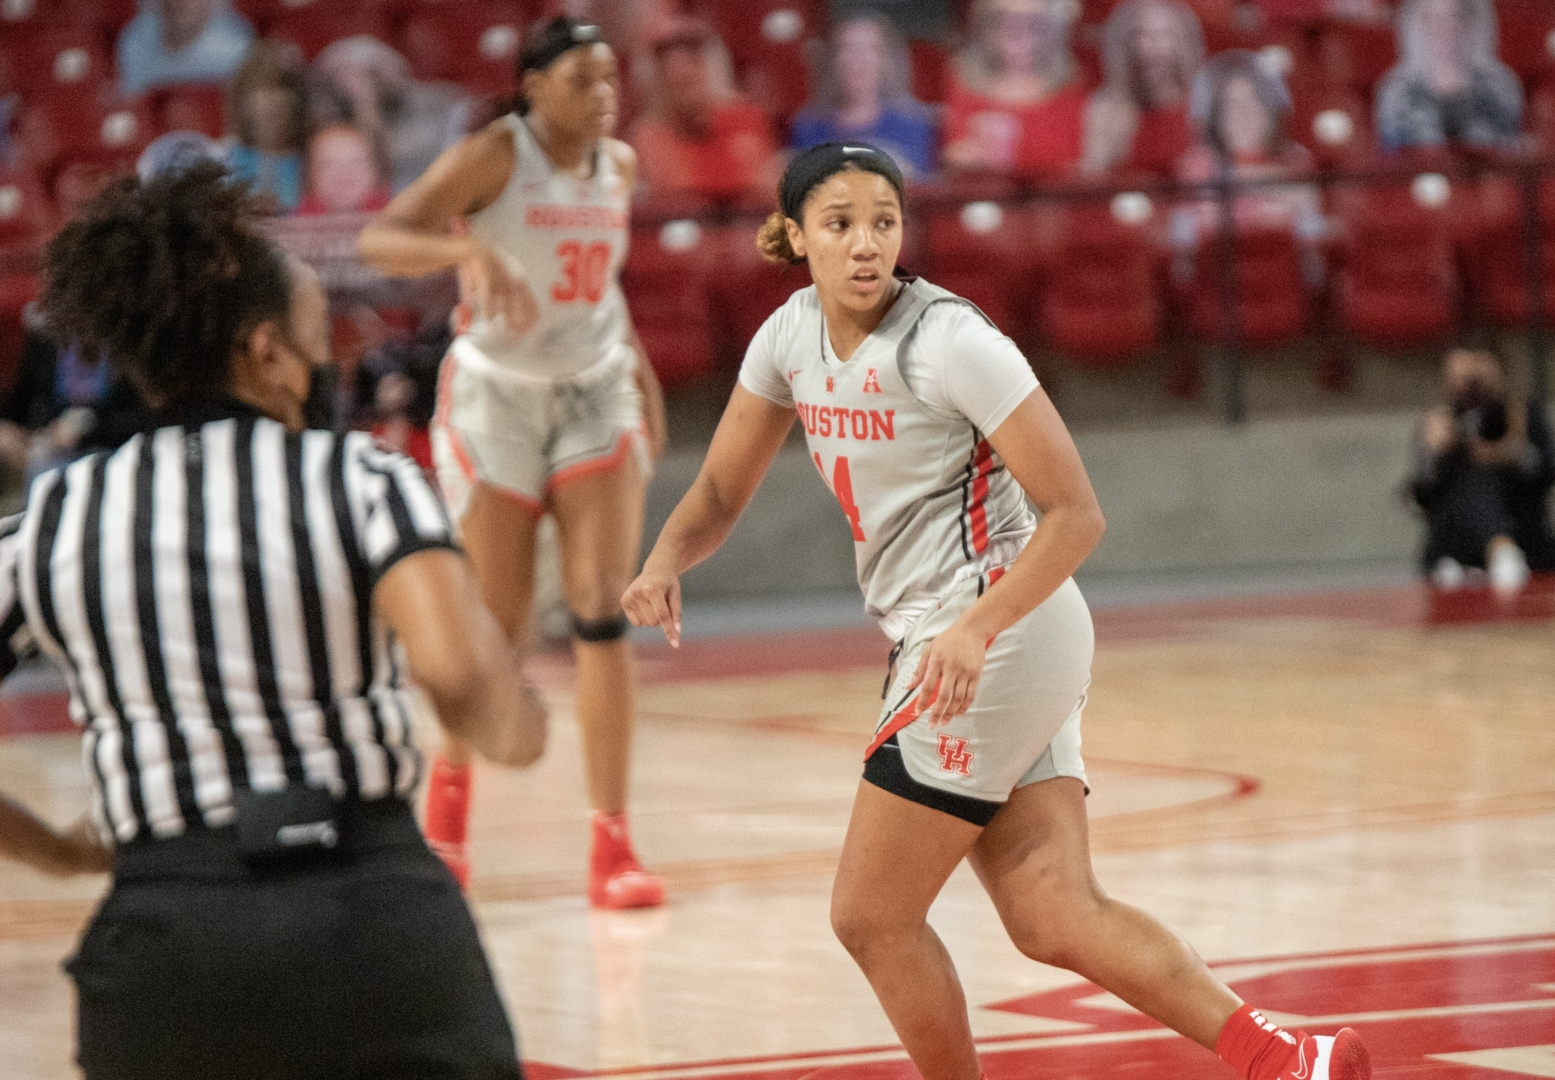 UH women's basketball freshman guard Laila Blair, who had a game-high 19 points against Temple on Wednesday, runs back defense against Wichita State inside Fertitta Center on Dec. 30, 2020. | Andy Yanez/The Cougar